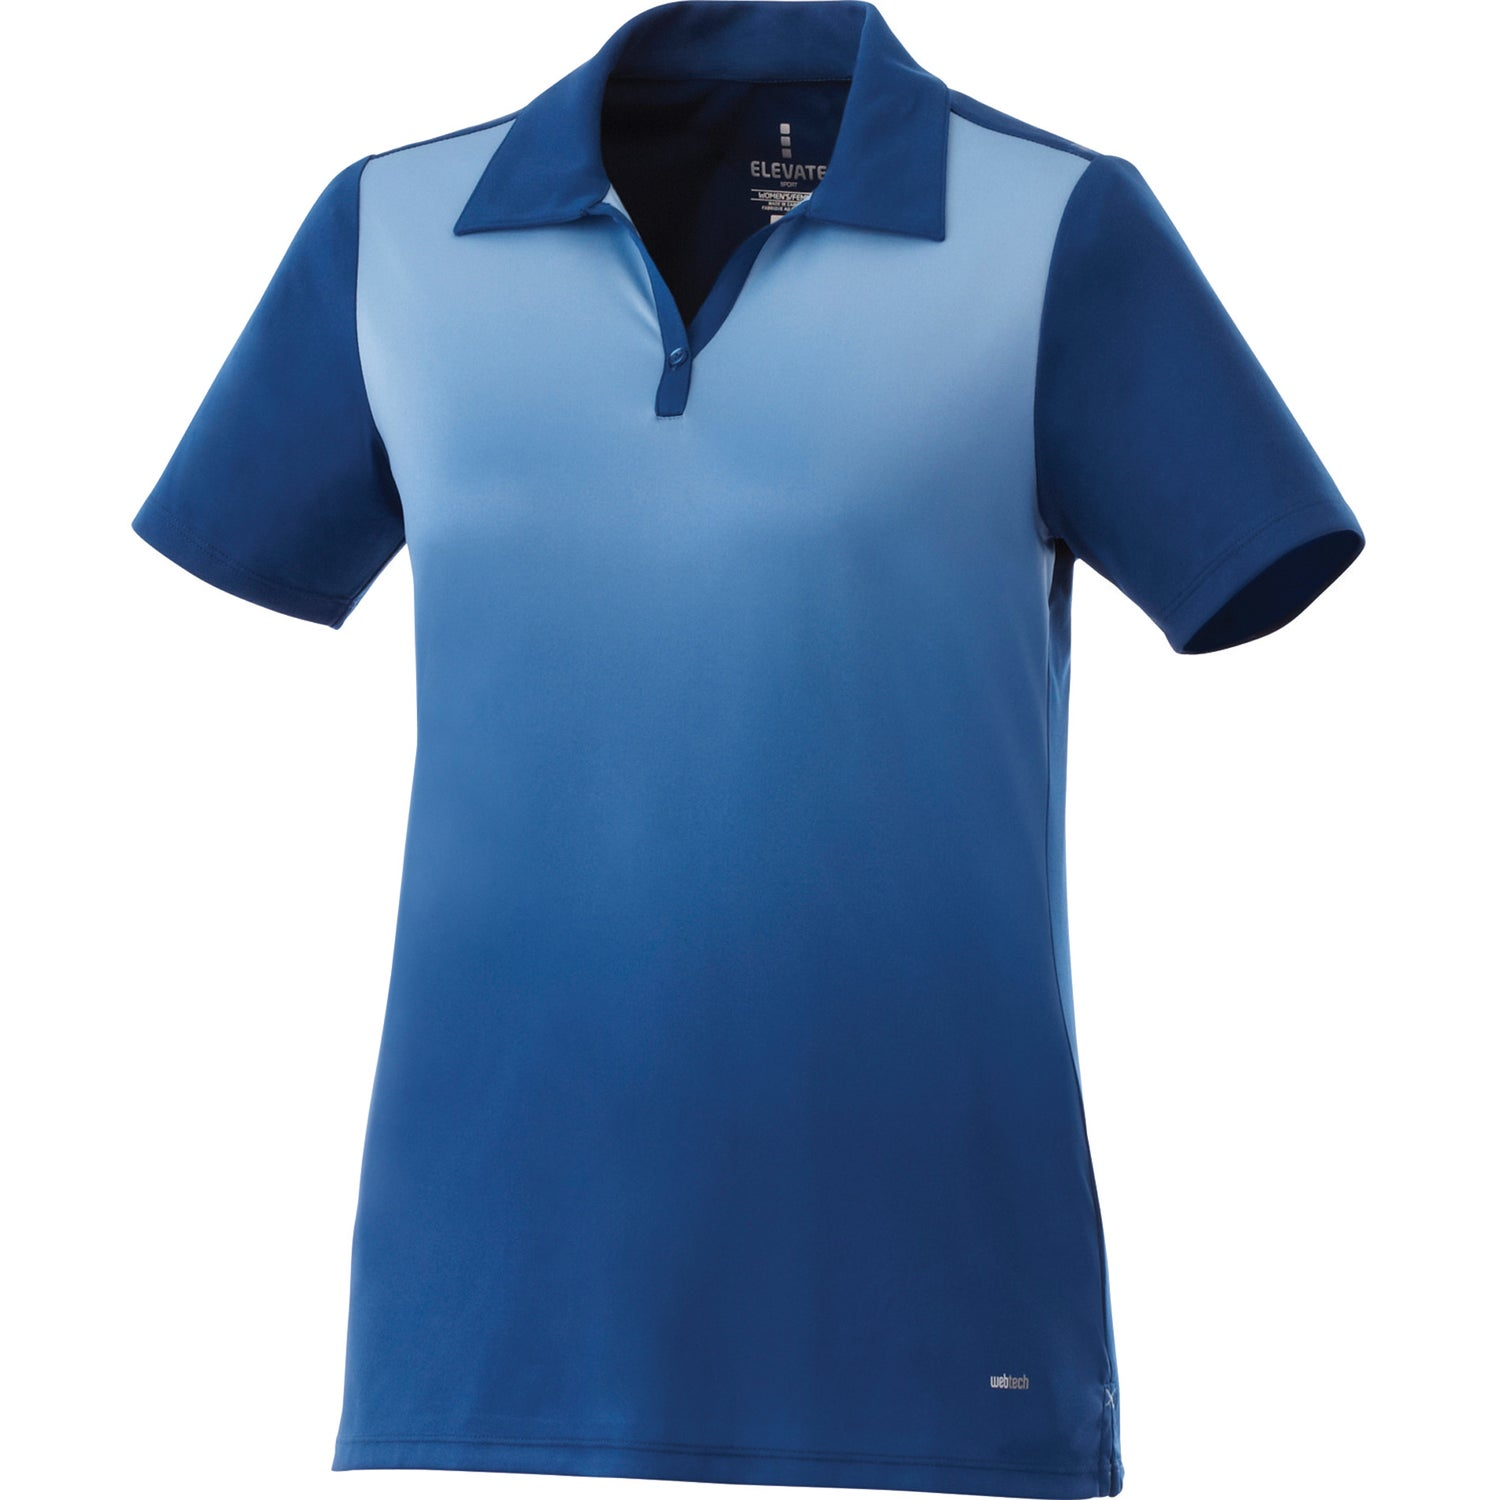 Next short sleeve polo shirt by trimark women 39 s for Quality polo shirts with company logo